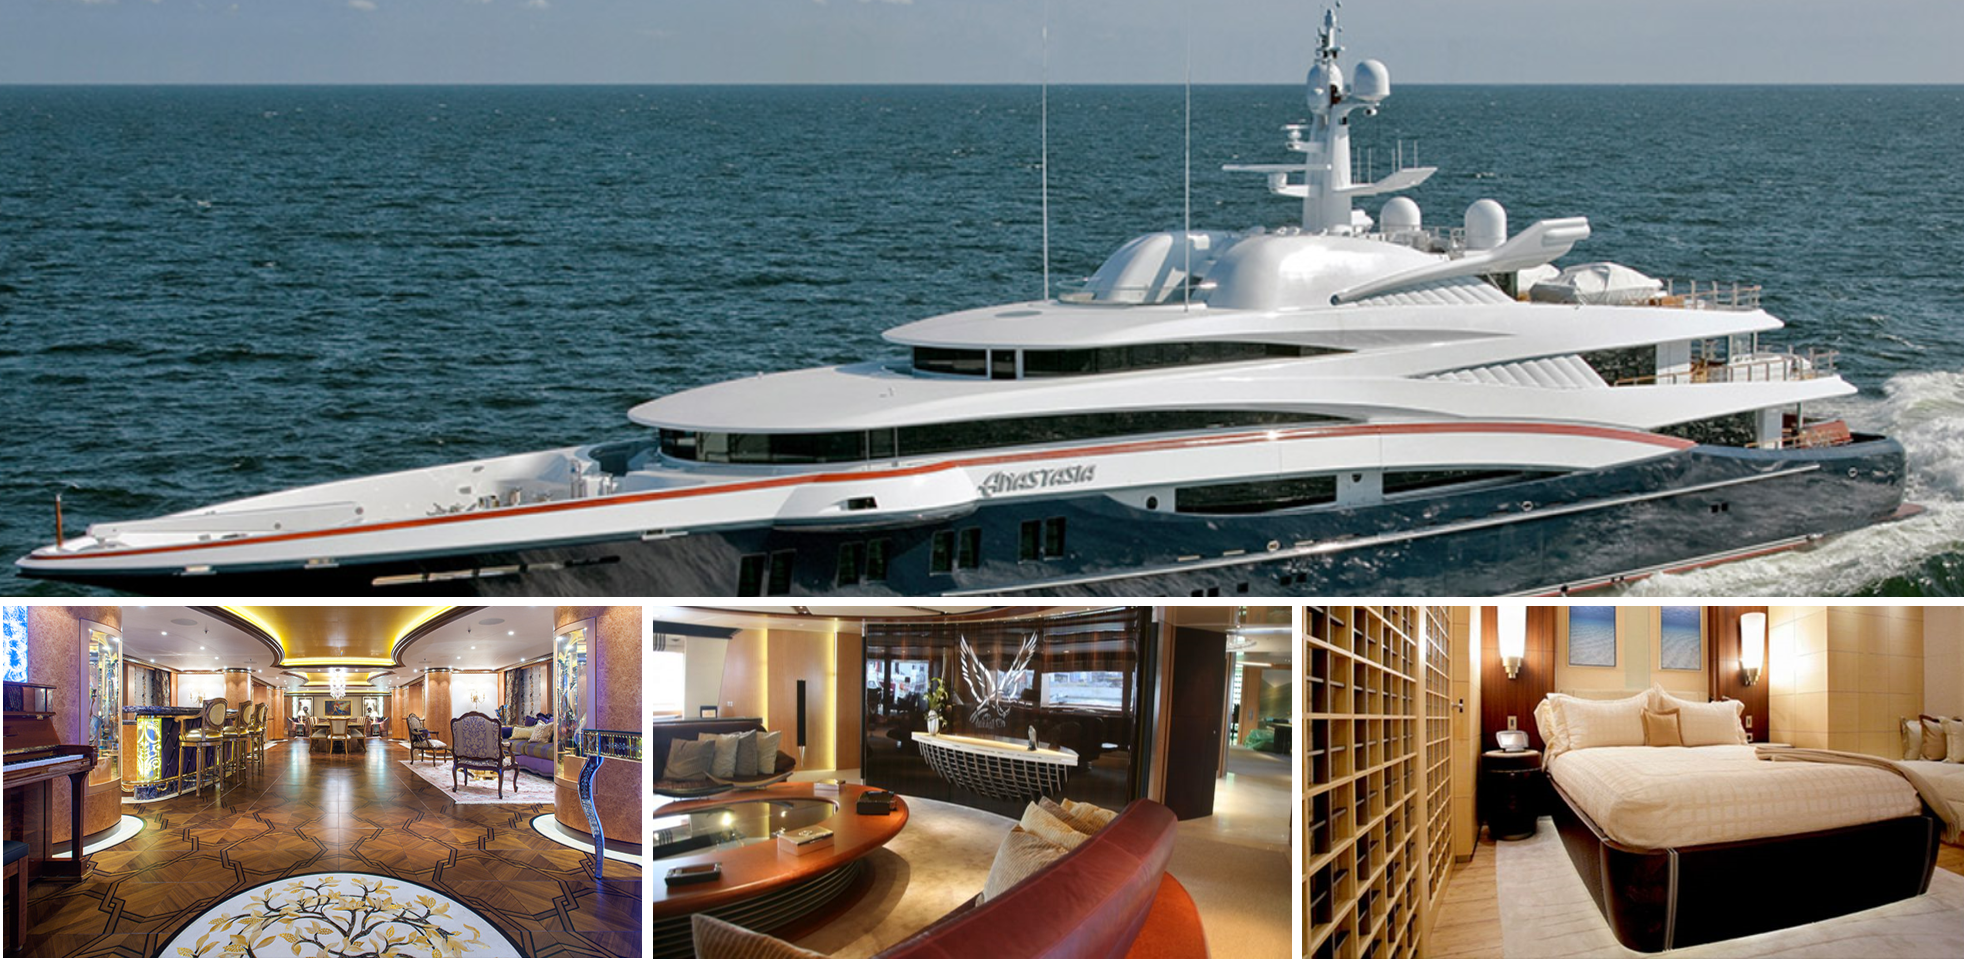 Interior outfitter of megayachts sold to French player